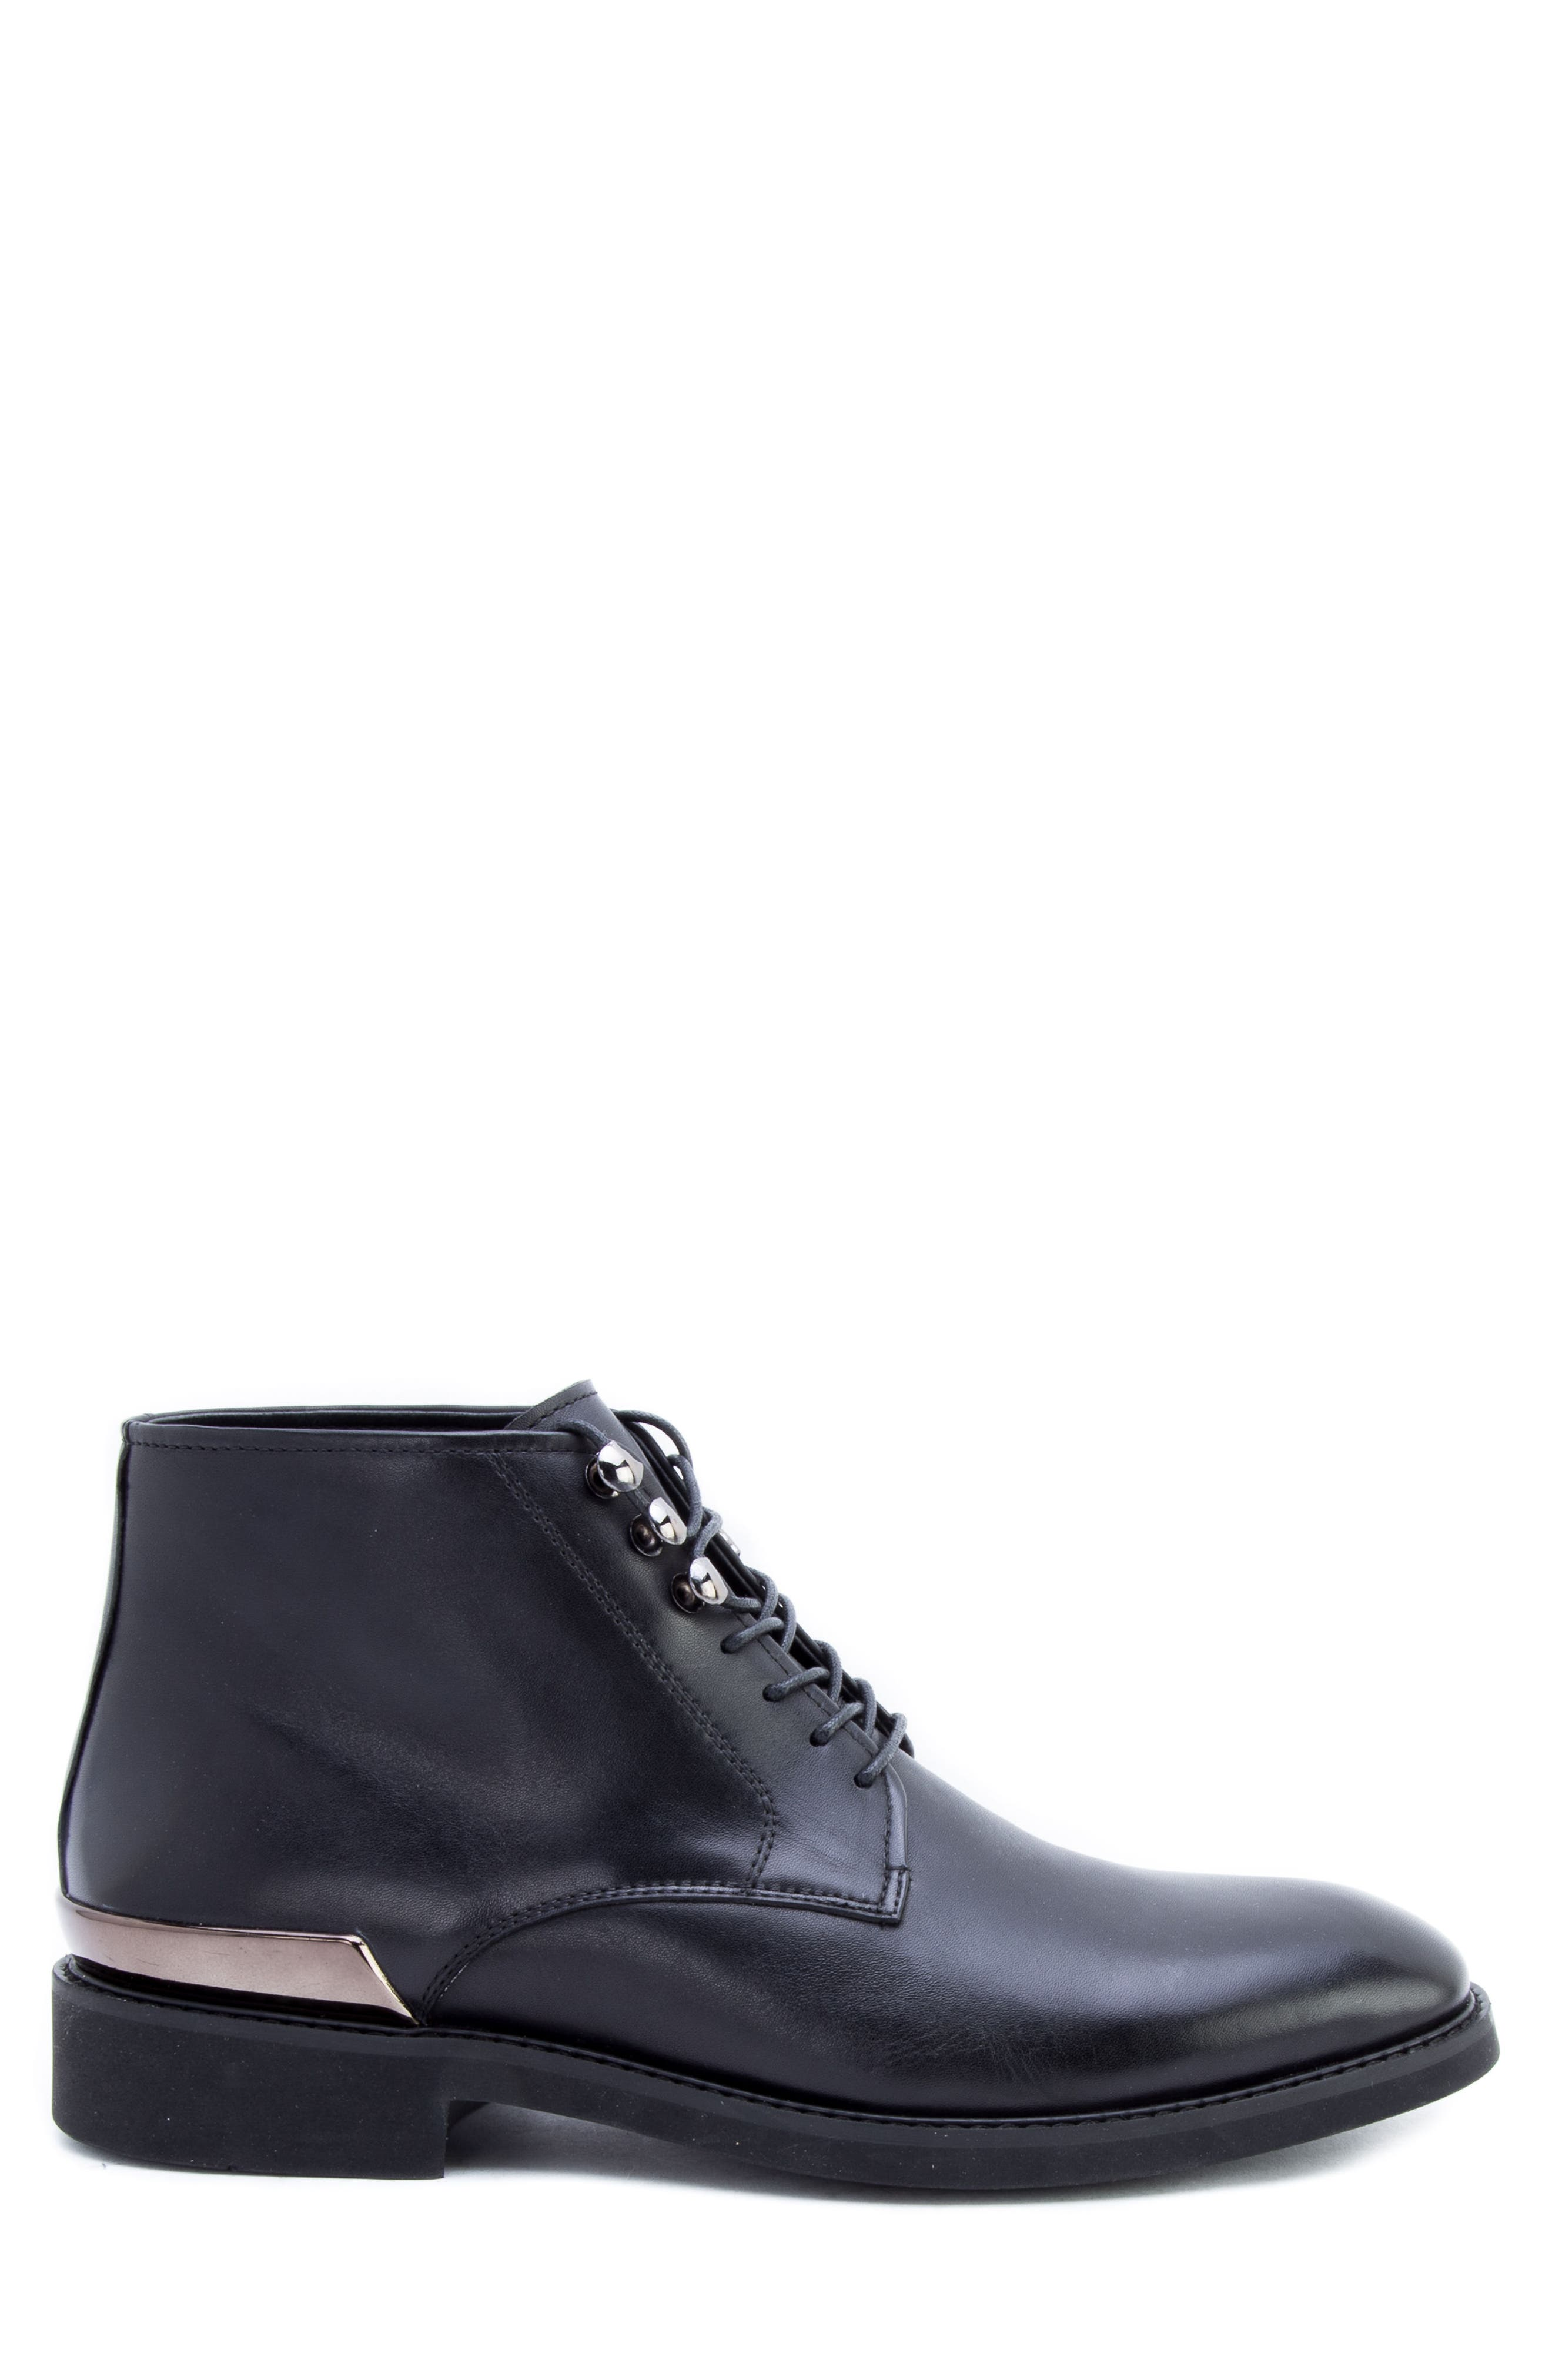 Soland Boot,                             Alternate thumbnail 3, color,                             BLACK LEATHER